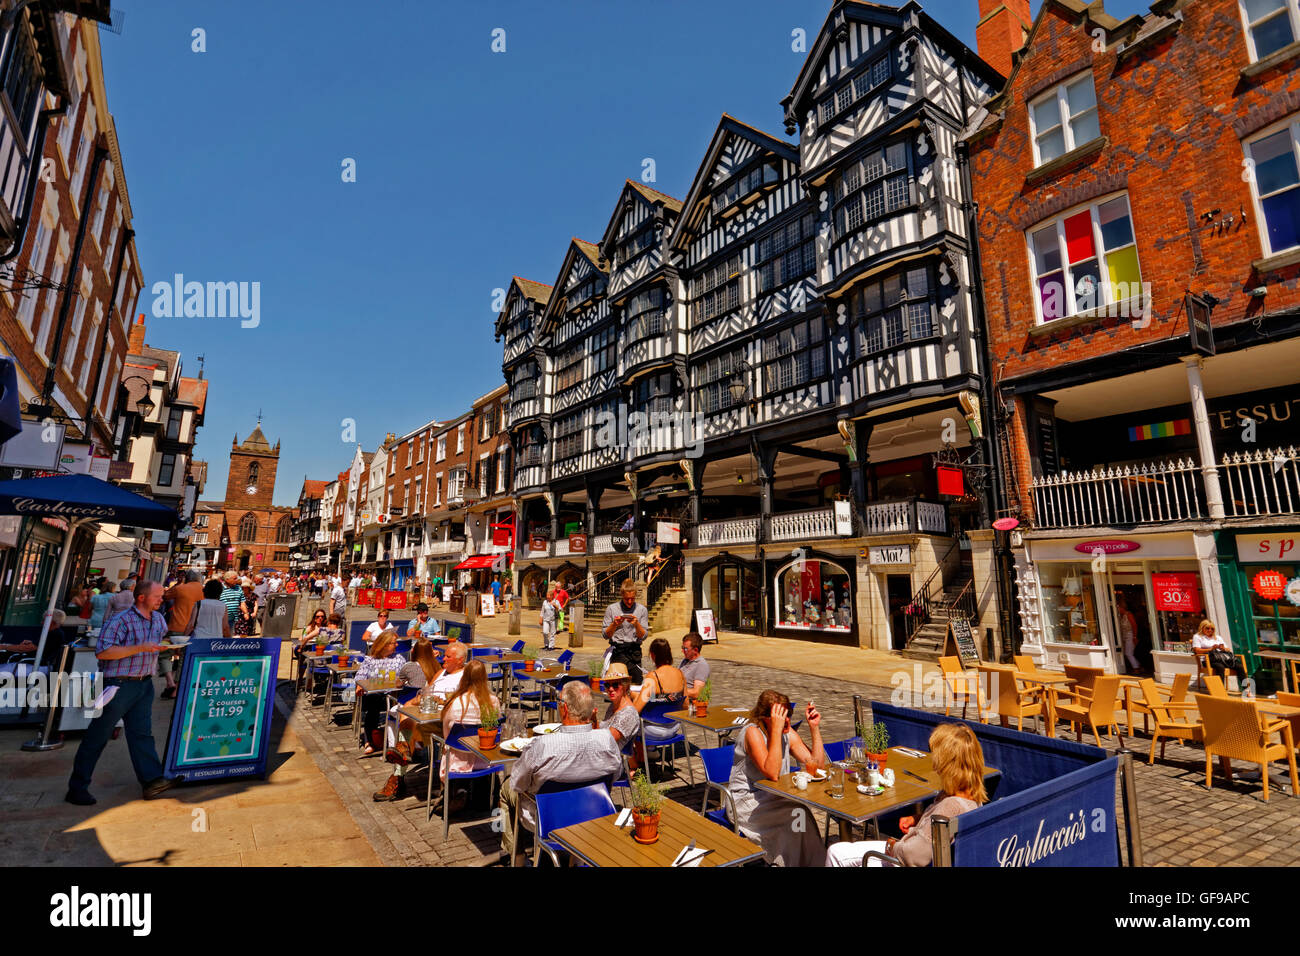 Bridge Street with the Grosvenor Shopping Centre at Chester city centre, Cheshire. - Stock Image